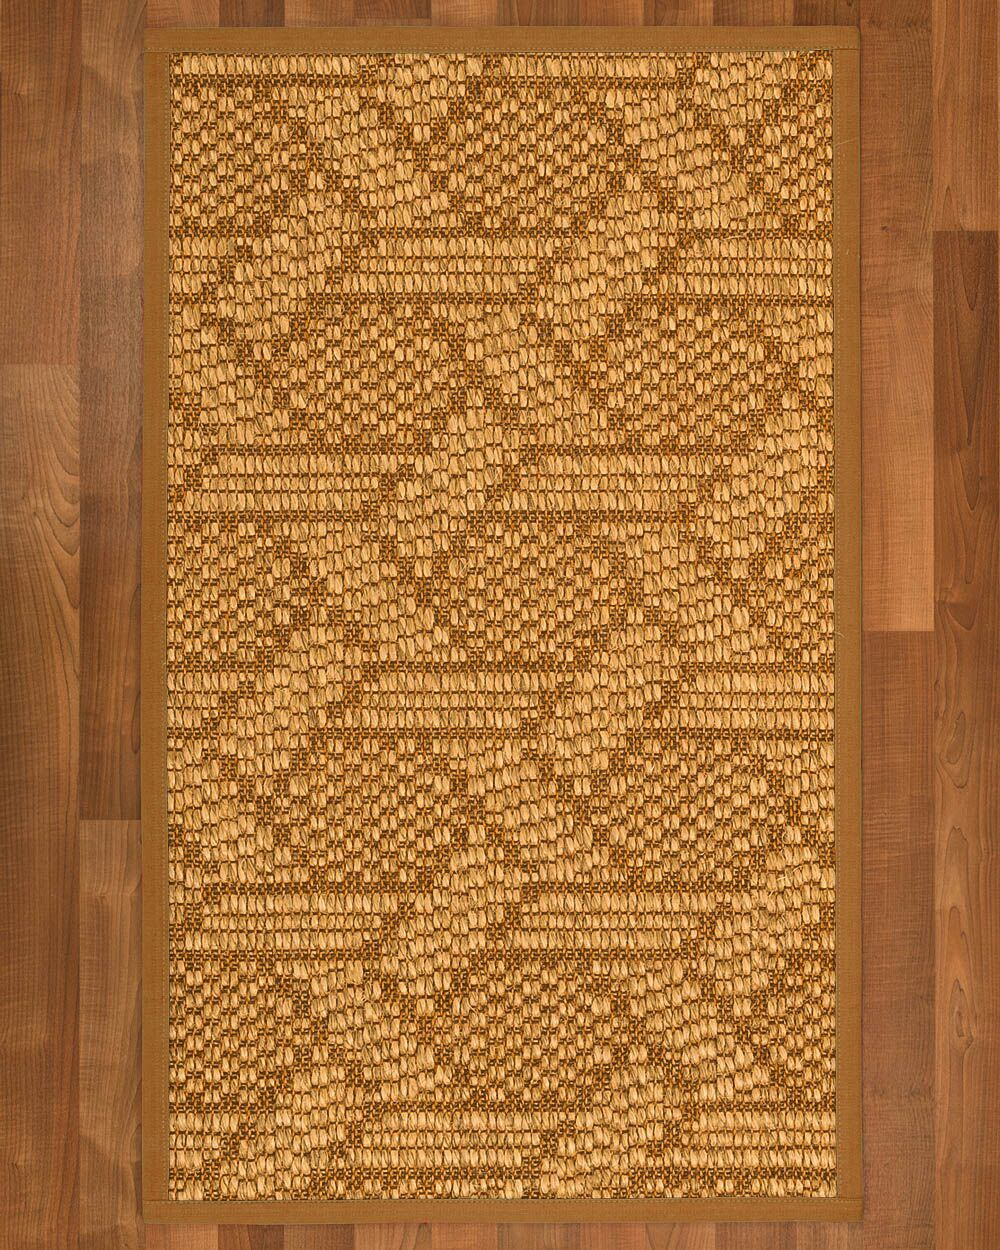 Aalin Hand-Woven Brown Area Rug Rug Size: Rectangle 12' x 15'